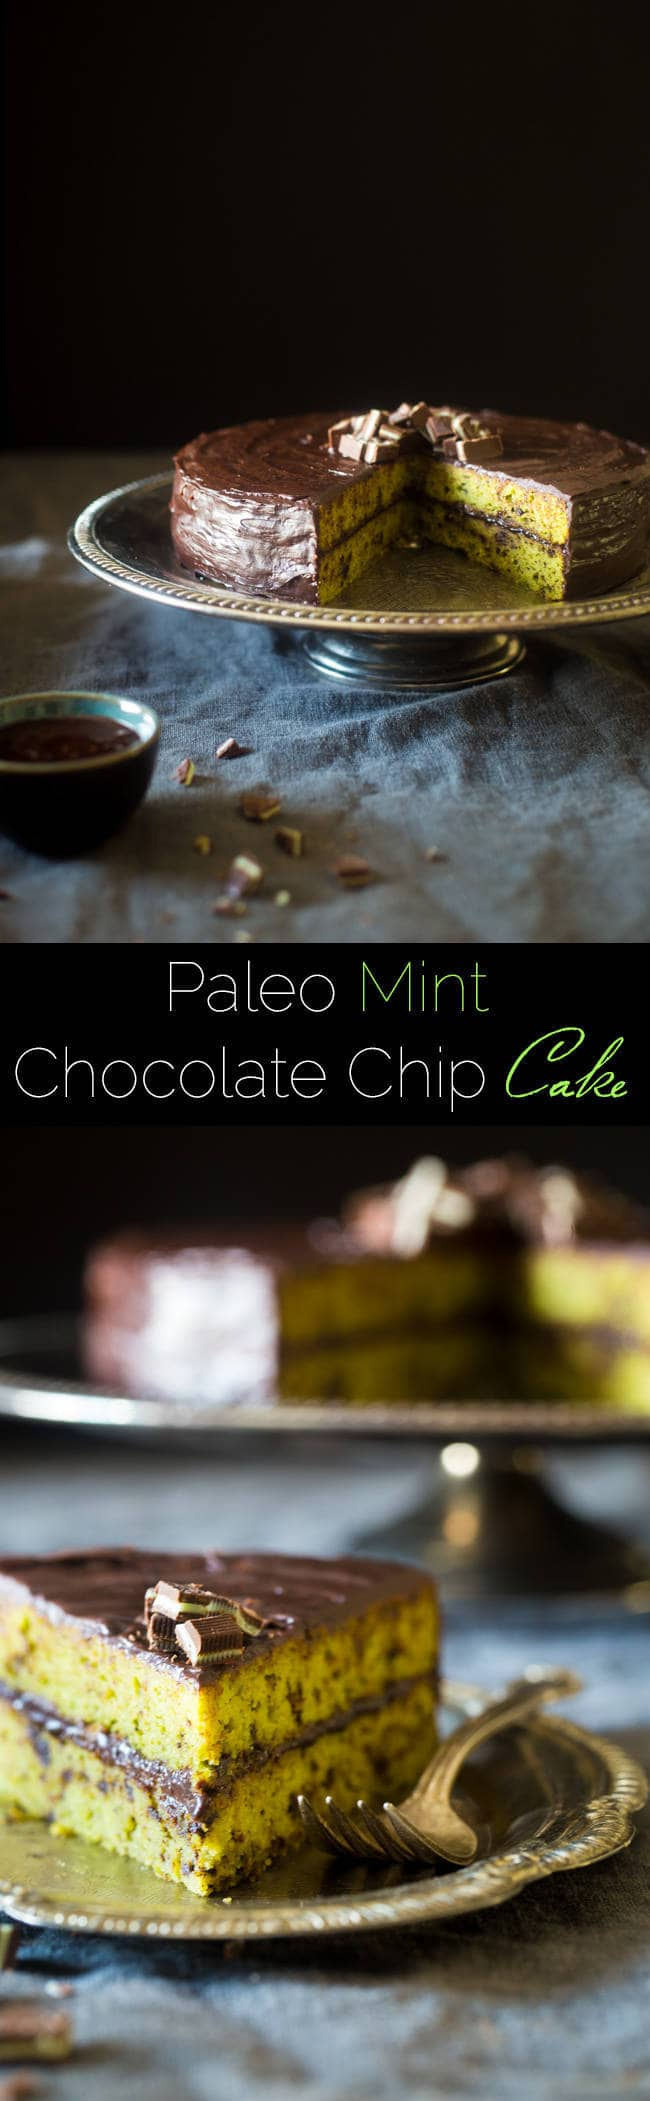 Paleo Mint Chocolate Chip Cake - This gluten free chocolate cake uses a secret ingredient so it's oil, butter and dye-free! You'd never know it's a healthy, holiday treat that is perfect for Christmas! | Foodfaithfitness.com | @FoodFaithFit